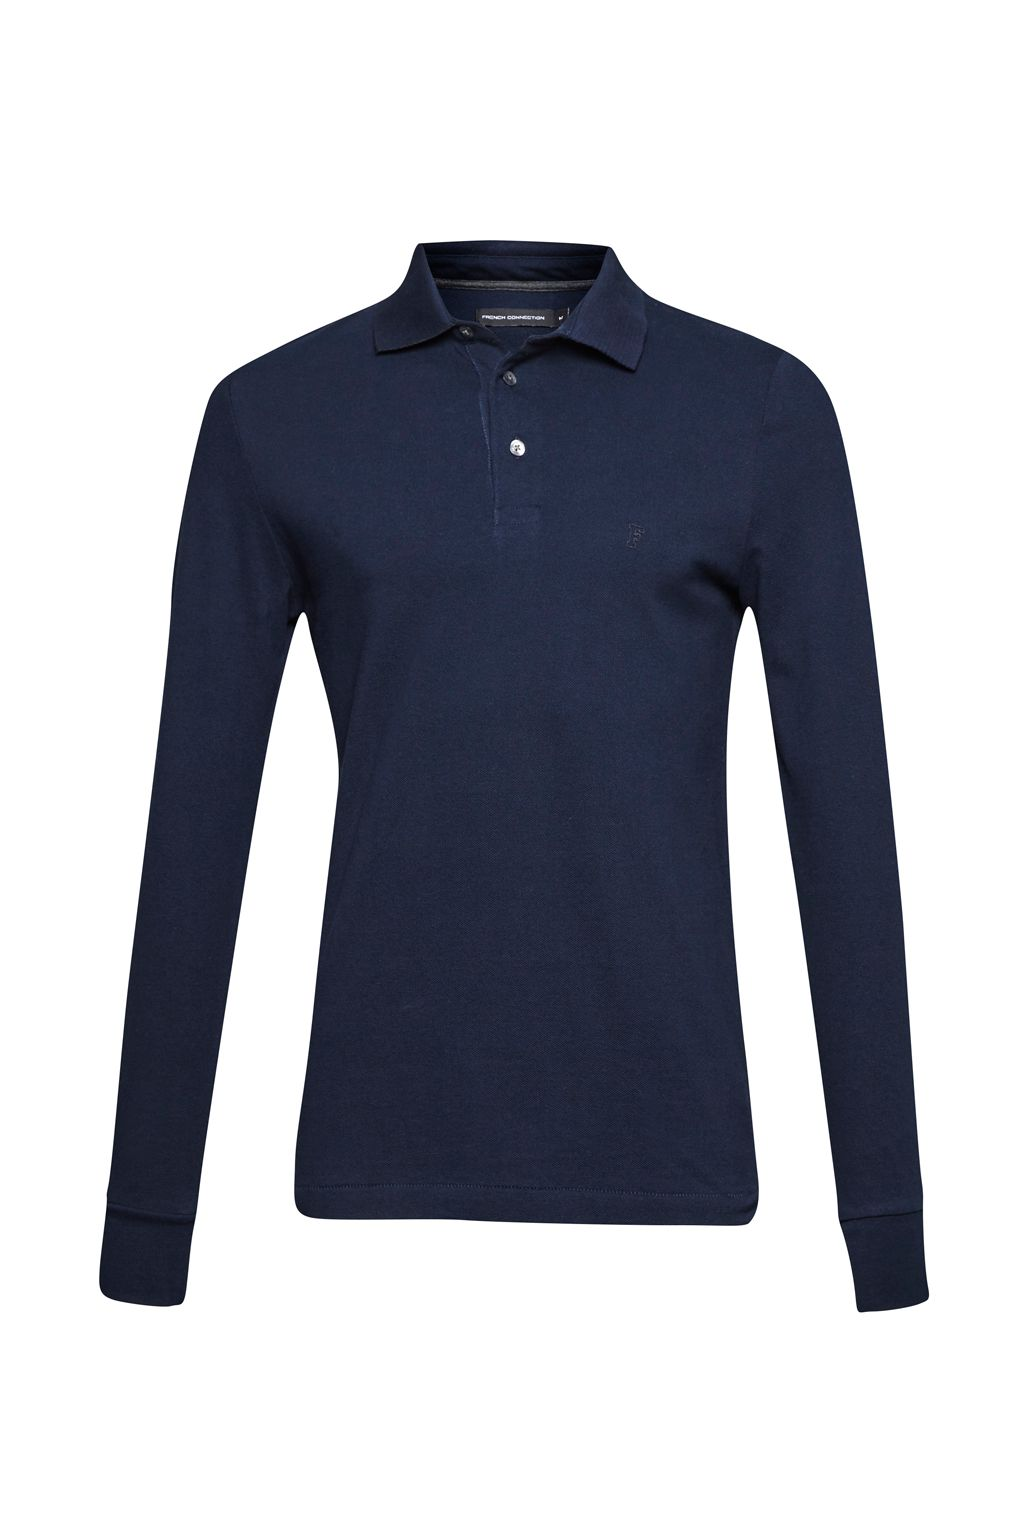 Men's French Connection Brunswick Long Sleeved Polo Shirt, Marine